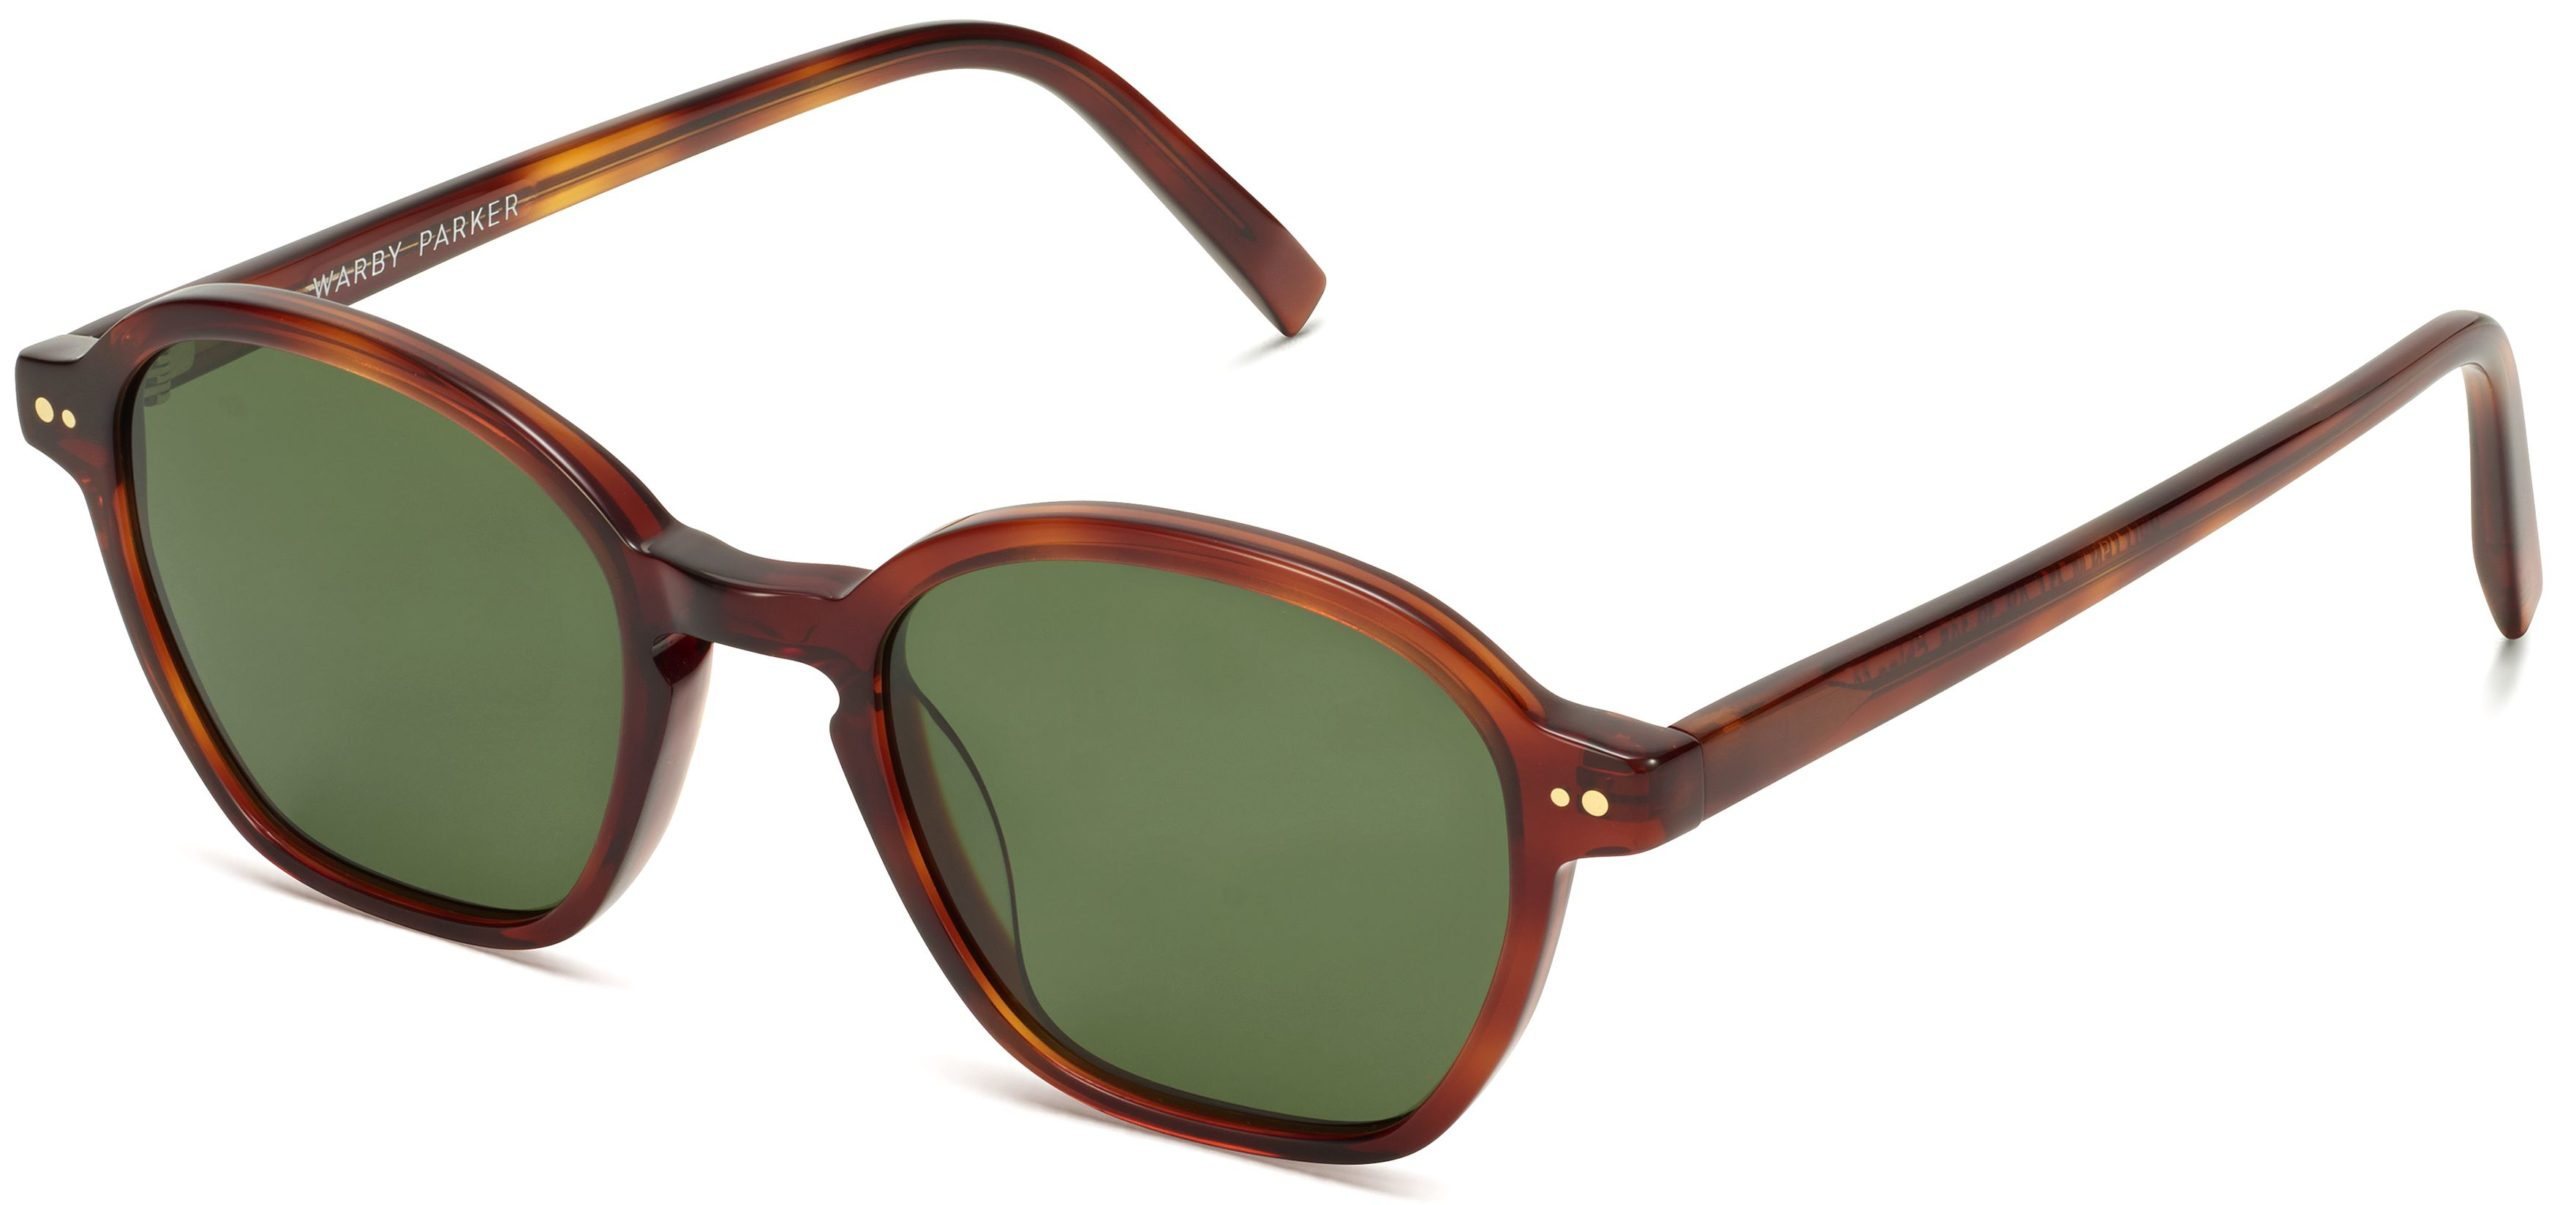 Angle View Image of Britten Sunglasses Collection, by Warby Parker Brand, in Amber Tortoise Color